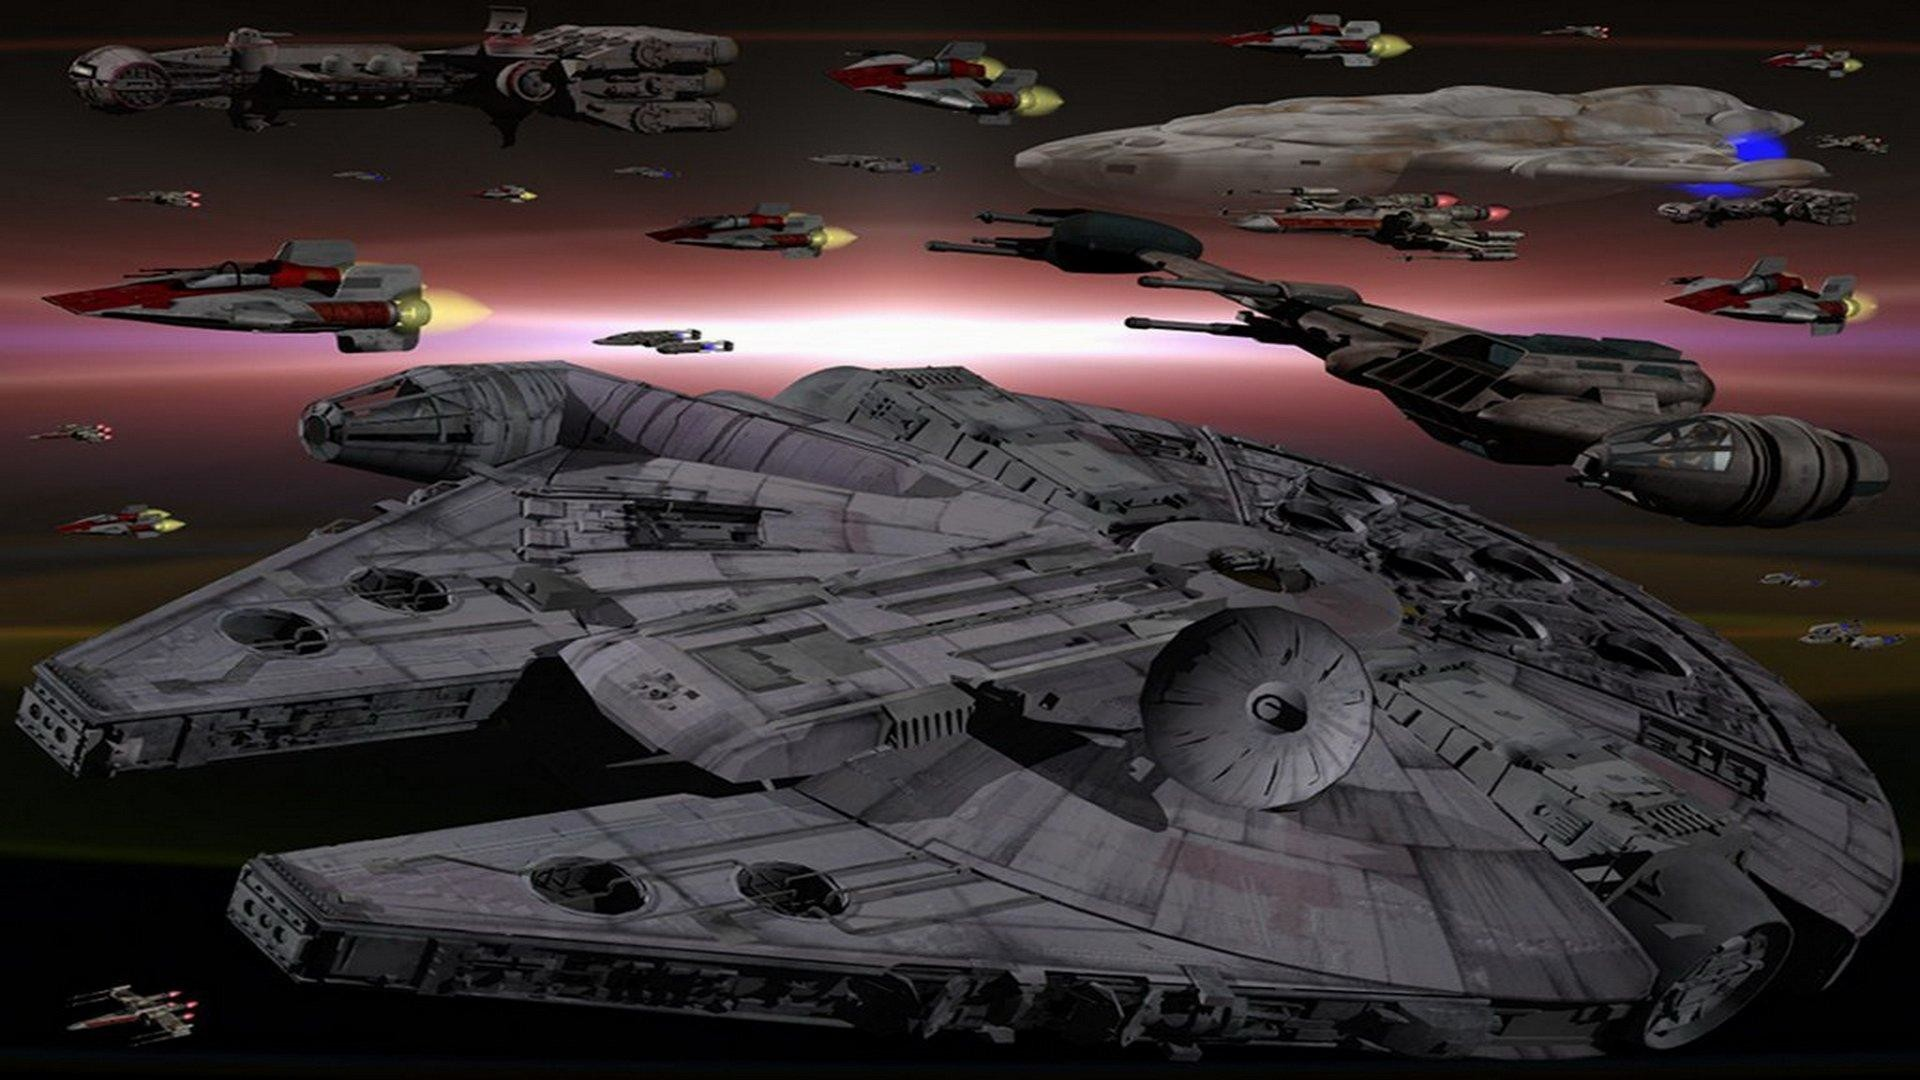 star-wars-movie-imagepages-images-millenium-falcon-1920%